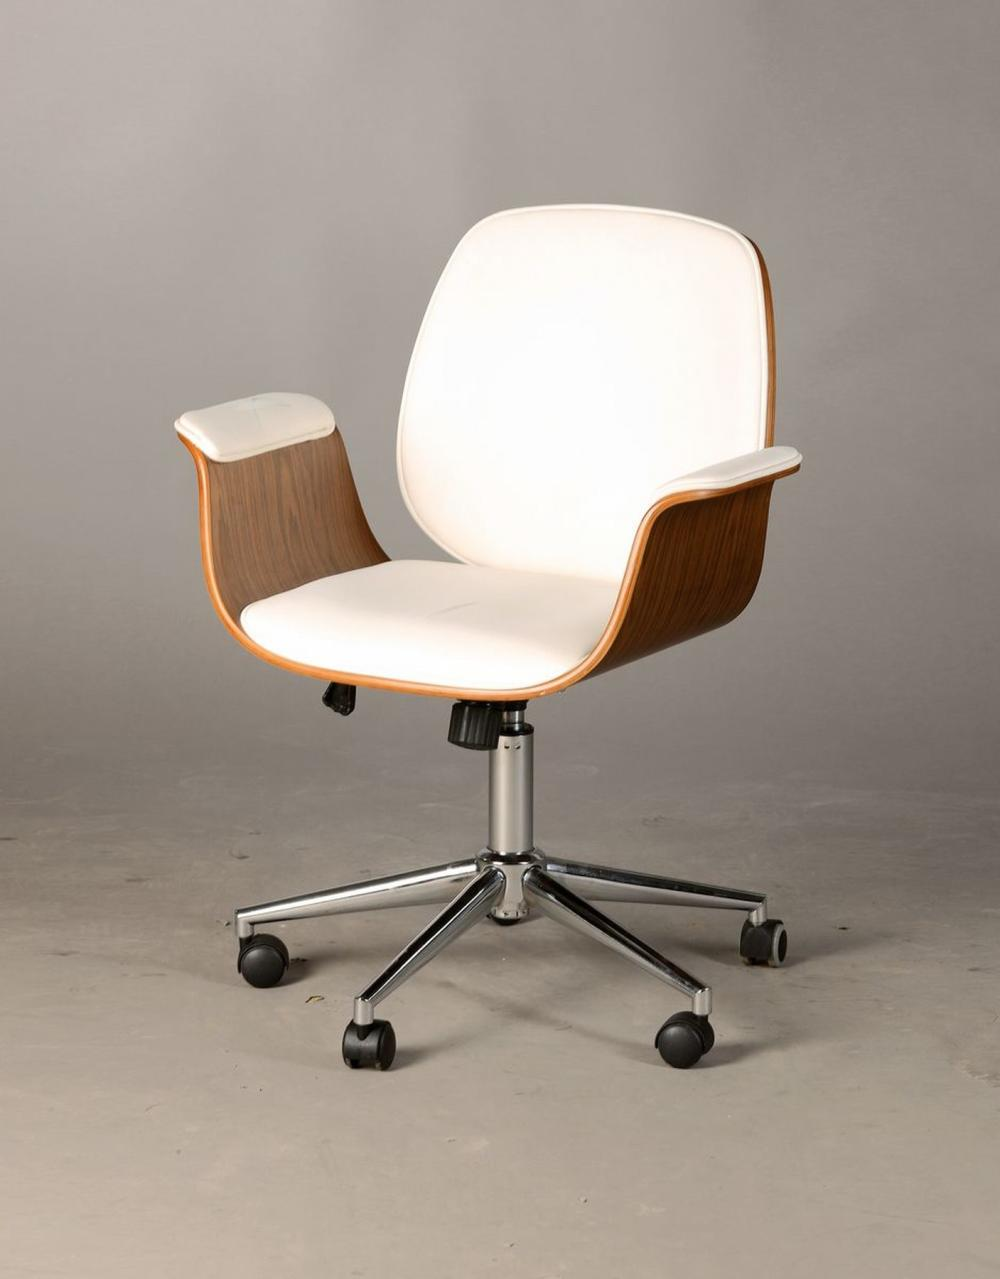 Office chair, probably Kare design, in the design of